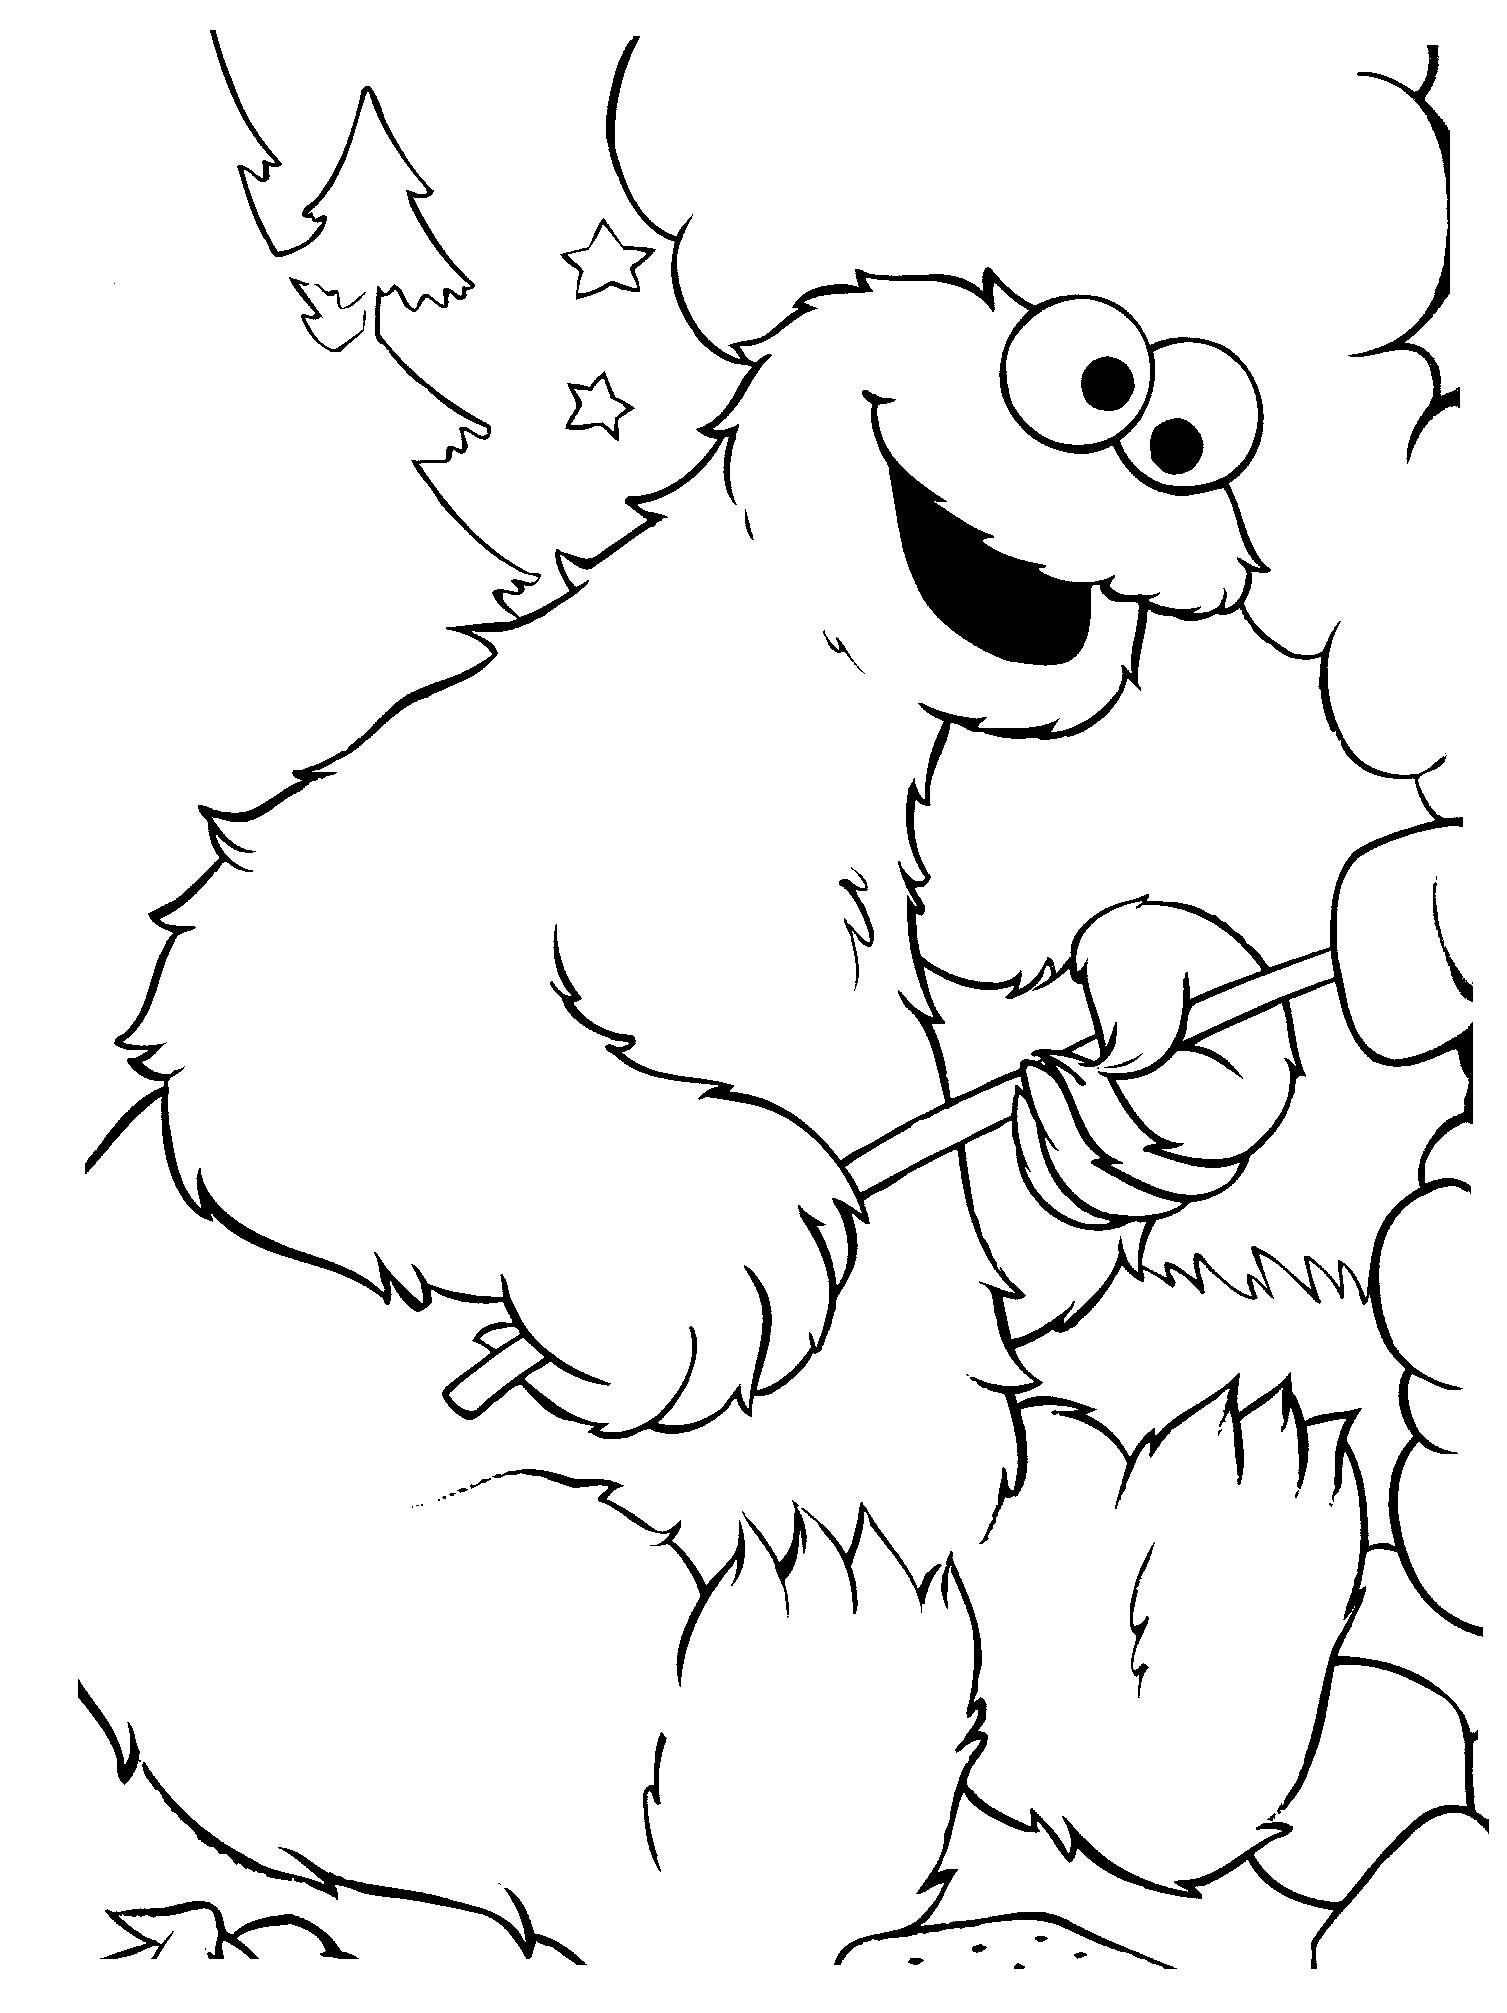 Cookie Monster / Toasting Marshmallows (Coloring Pages) | Coloring ...